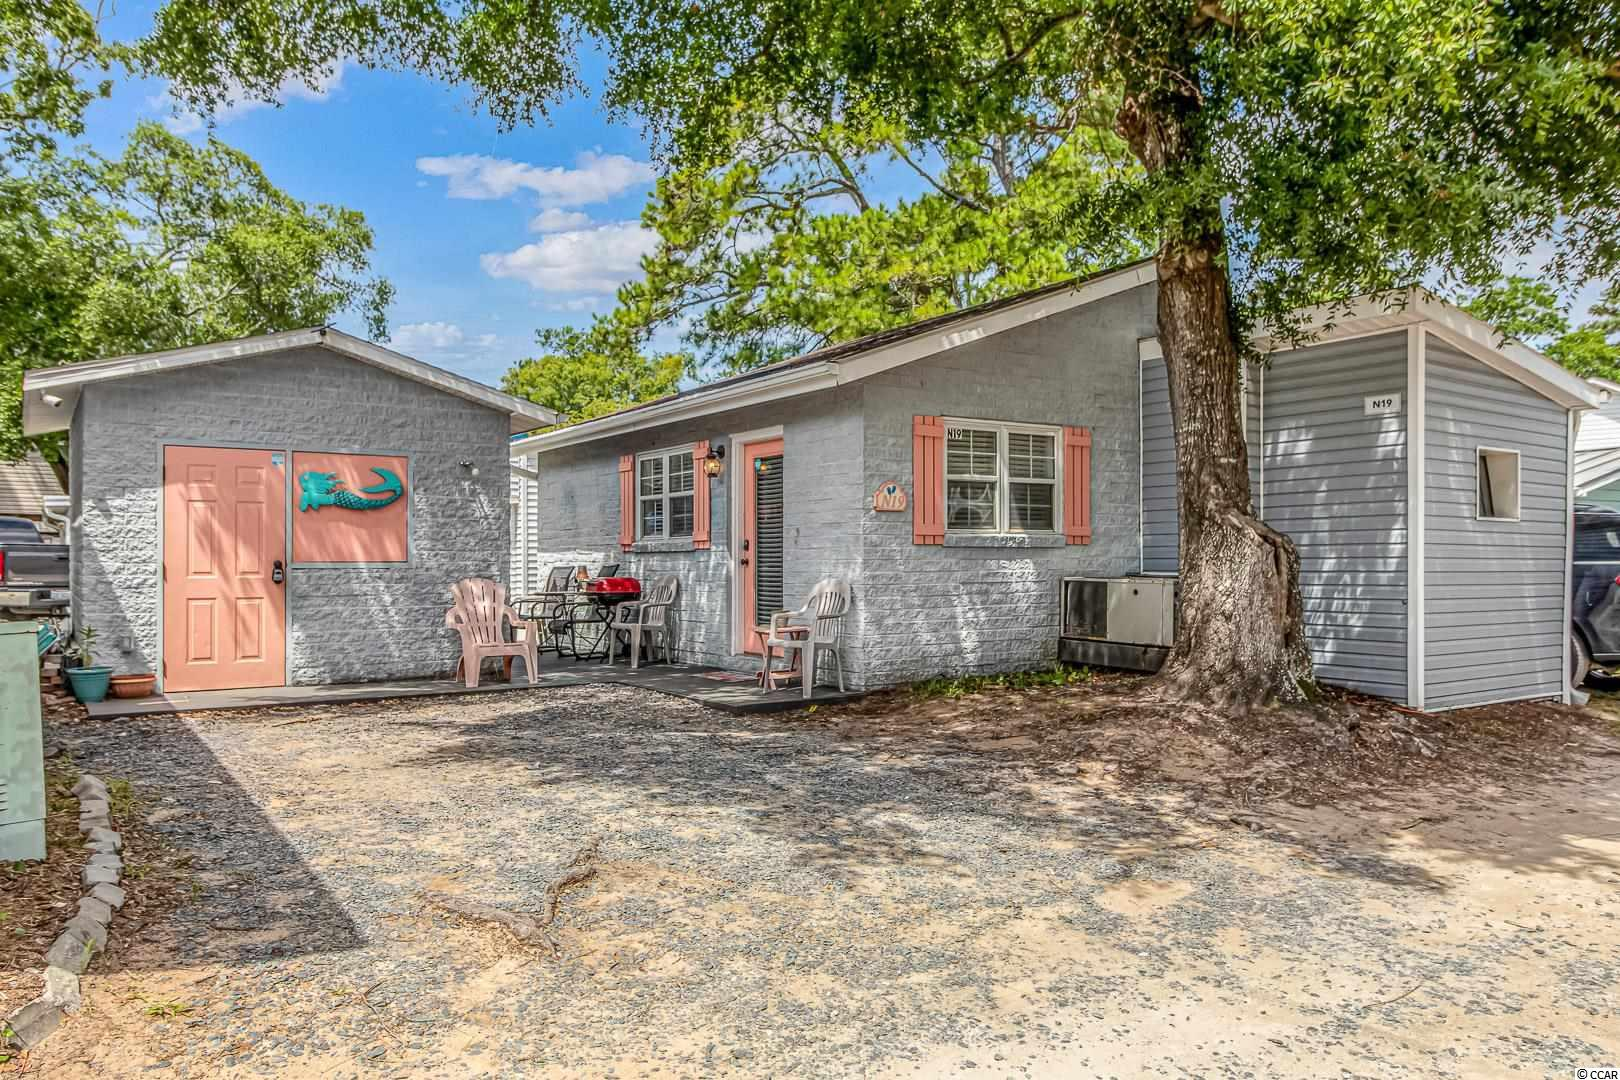 Do you want to live on VACATION full time or have a fabulous rental investment. This beach cottage is in the award winning Ocean Lakes, and is just a short stroll or golf cart ride to THE BEACH, the private water park, camp store, snack bar, and all the other amenities that Ocean Lakes has to offer. This beach hide away features 2 bedroom and 1 bath, large living room. It also includes ample parking for your golf cart and cars. MAKE YOUR DREAM OF LIVING AT THE BEACH COME TRUE!!!!!